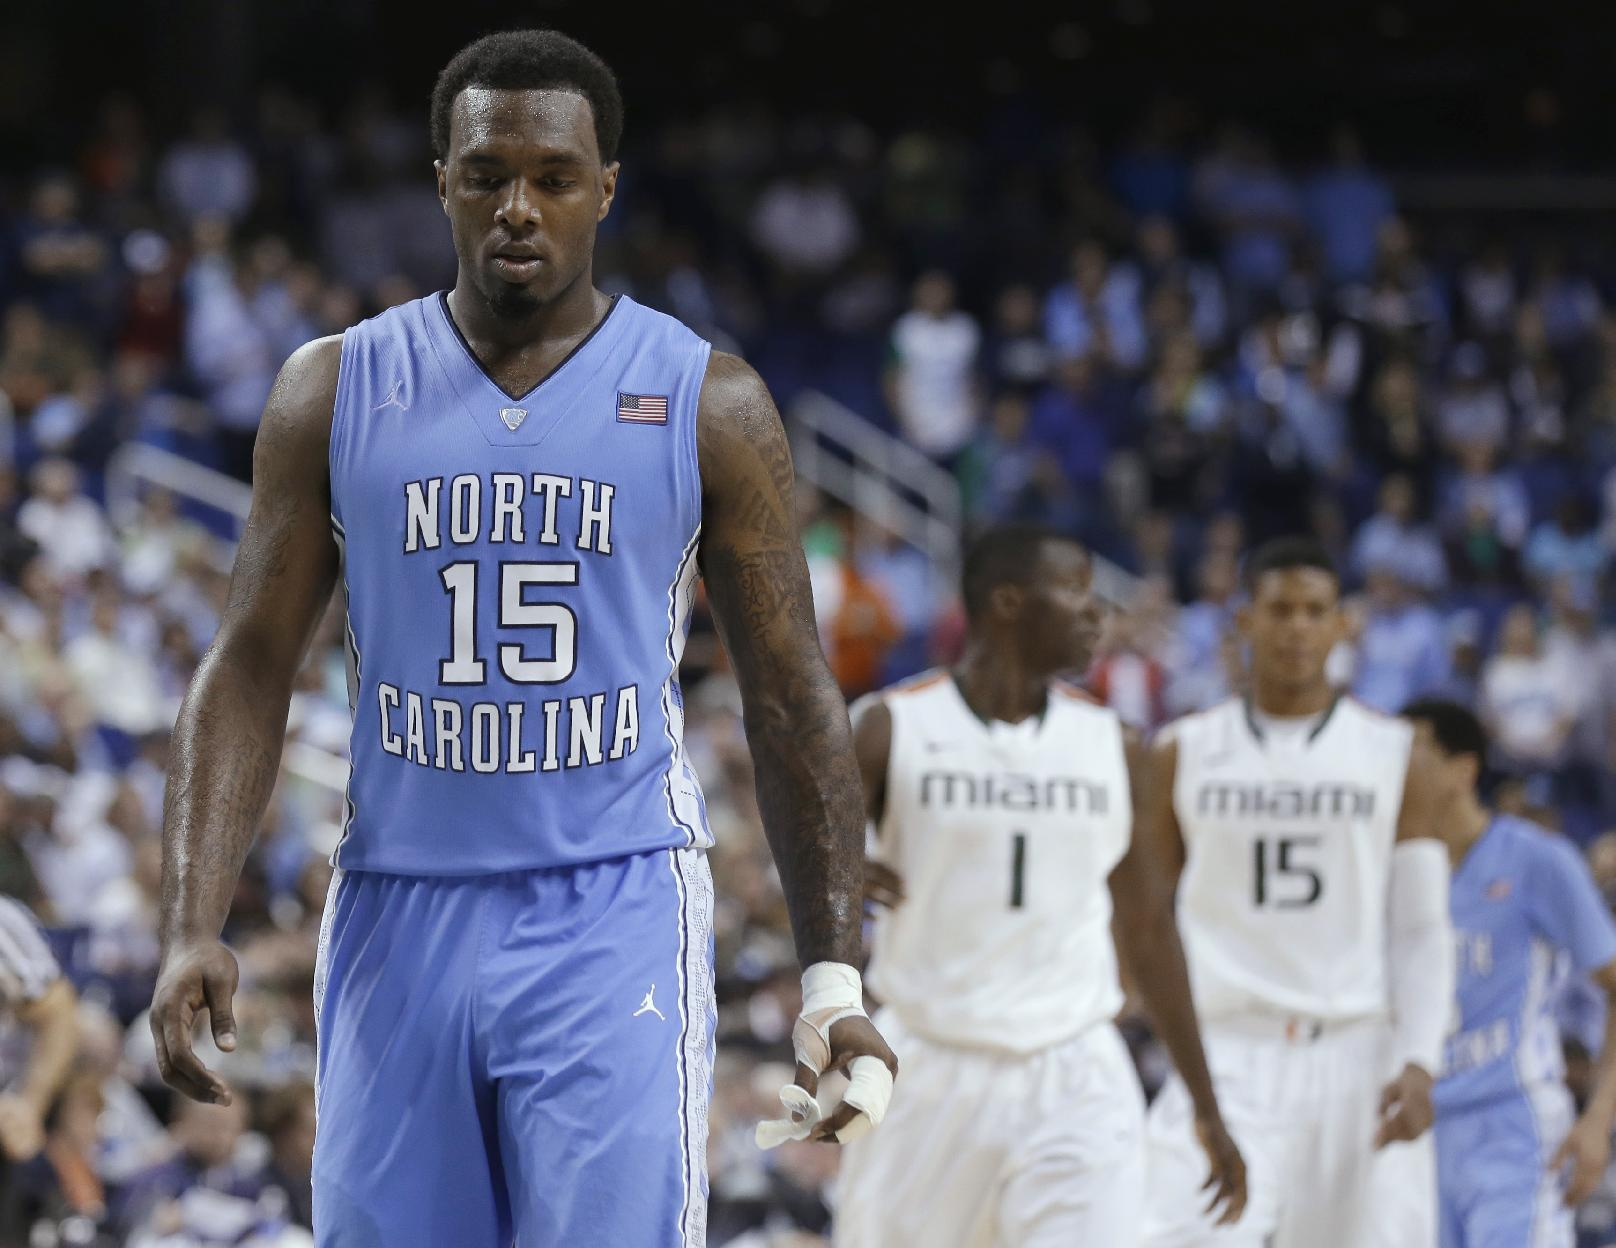 In this March 17, 2013, file photo, North Carolina's P.J. Hairston (15) walks downcourt during NCAA college basketball game against Miami in the championship of the Atlantic Coast Conference tournament in Greensboro, N.C. Hairston says he will play in the NBA Development League. In a statement, Hairston said he submitted paperwork to play in the league Friday afternoon, Jan. 10, 2014. The Tar Heels' leading scorer never played this season after the school decided last month not to seek his reinstatement for NCAA rules violations